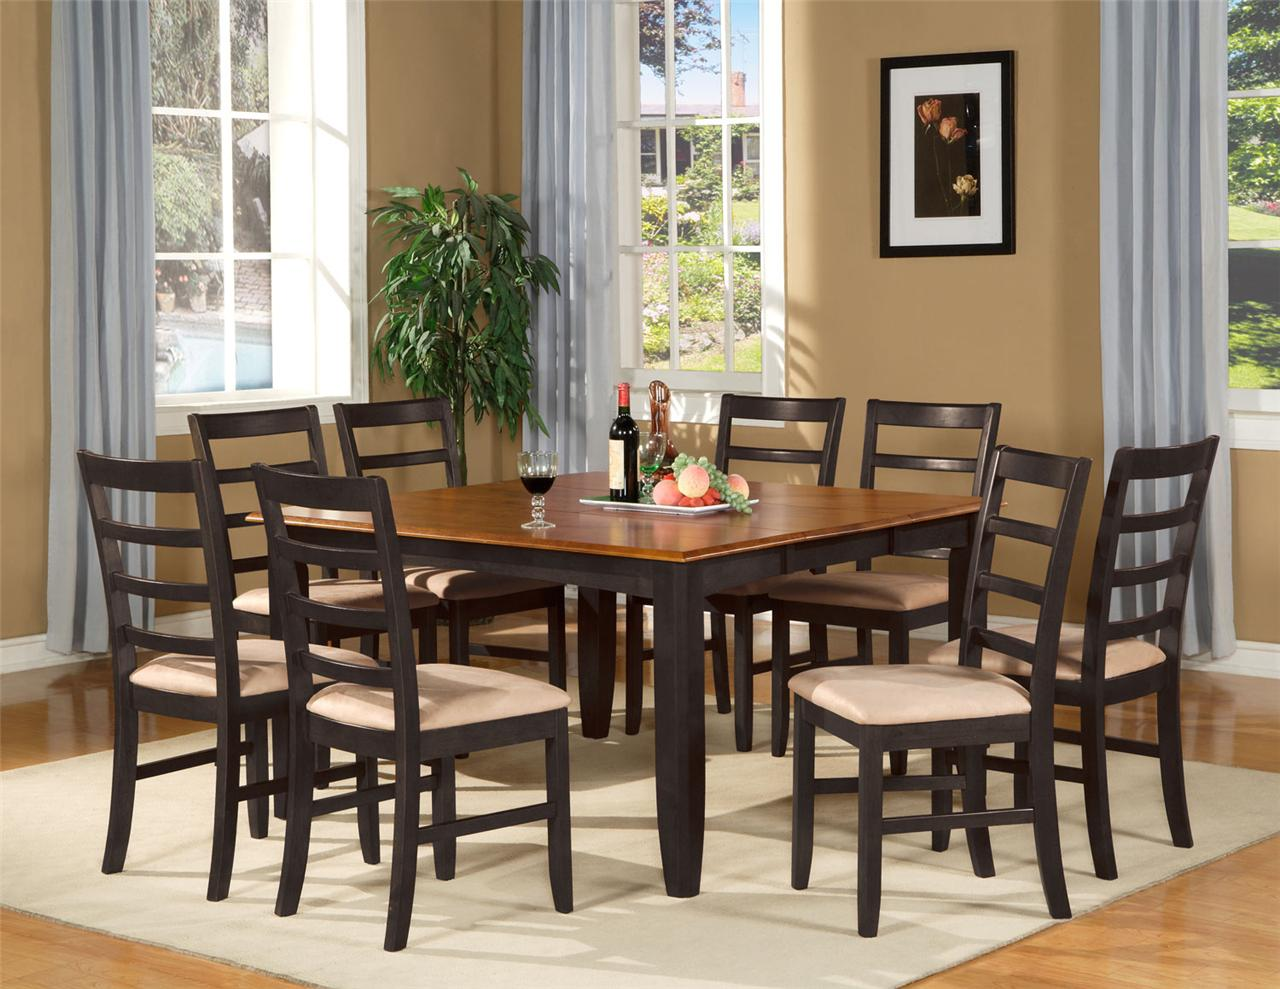 7 pc square dinette kitchen dining table set 6 chairs ebay for 4 dining room table